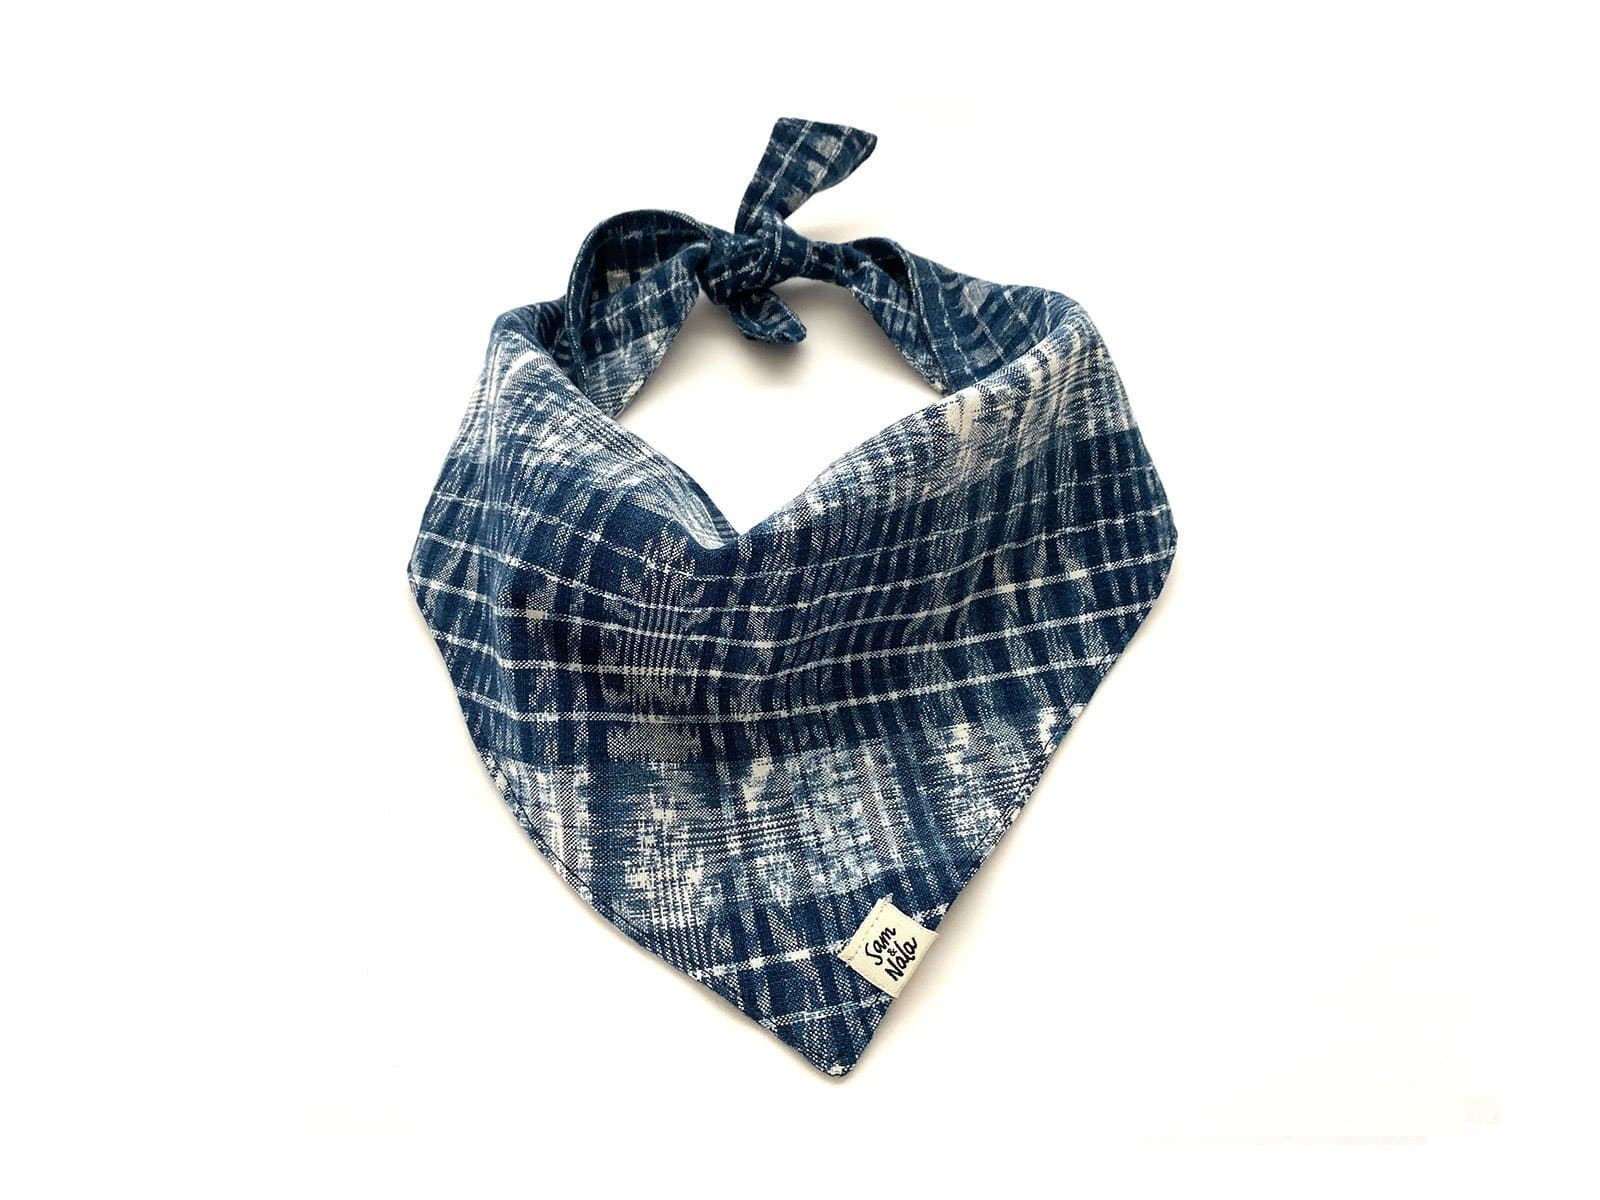 Heirloom Blue Dog Bandana